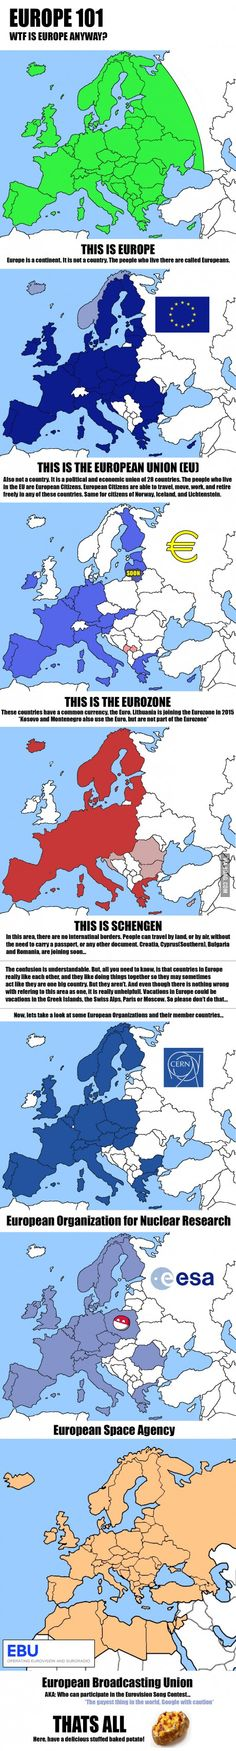 Europe explained for non-Europeans!